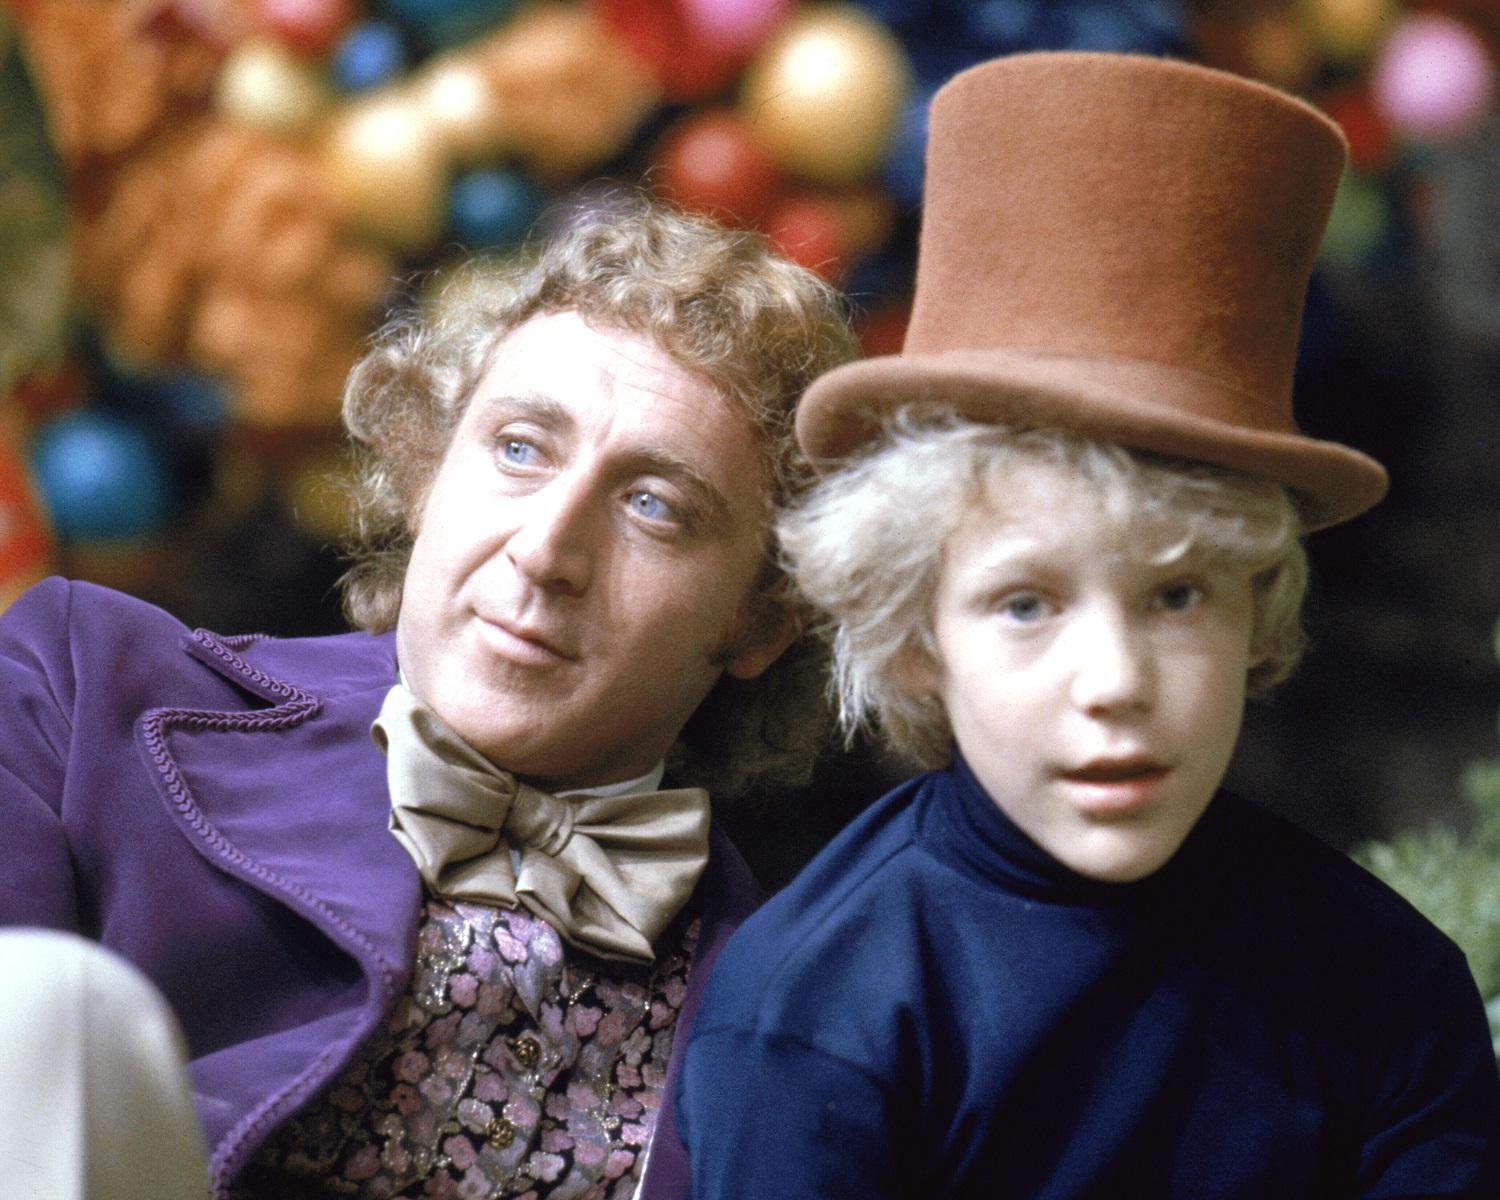 Gene Wilder as Willy Wonka and Peter Ostrum as Charlie Bucket on the set of the fantasy film Willy Wonka & the Chocolate Factory